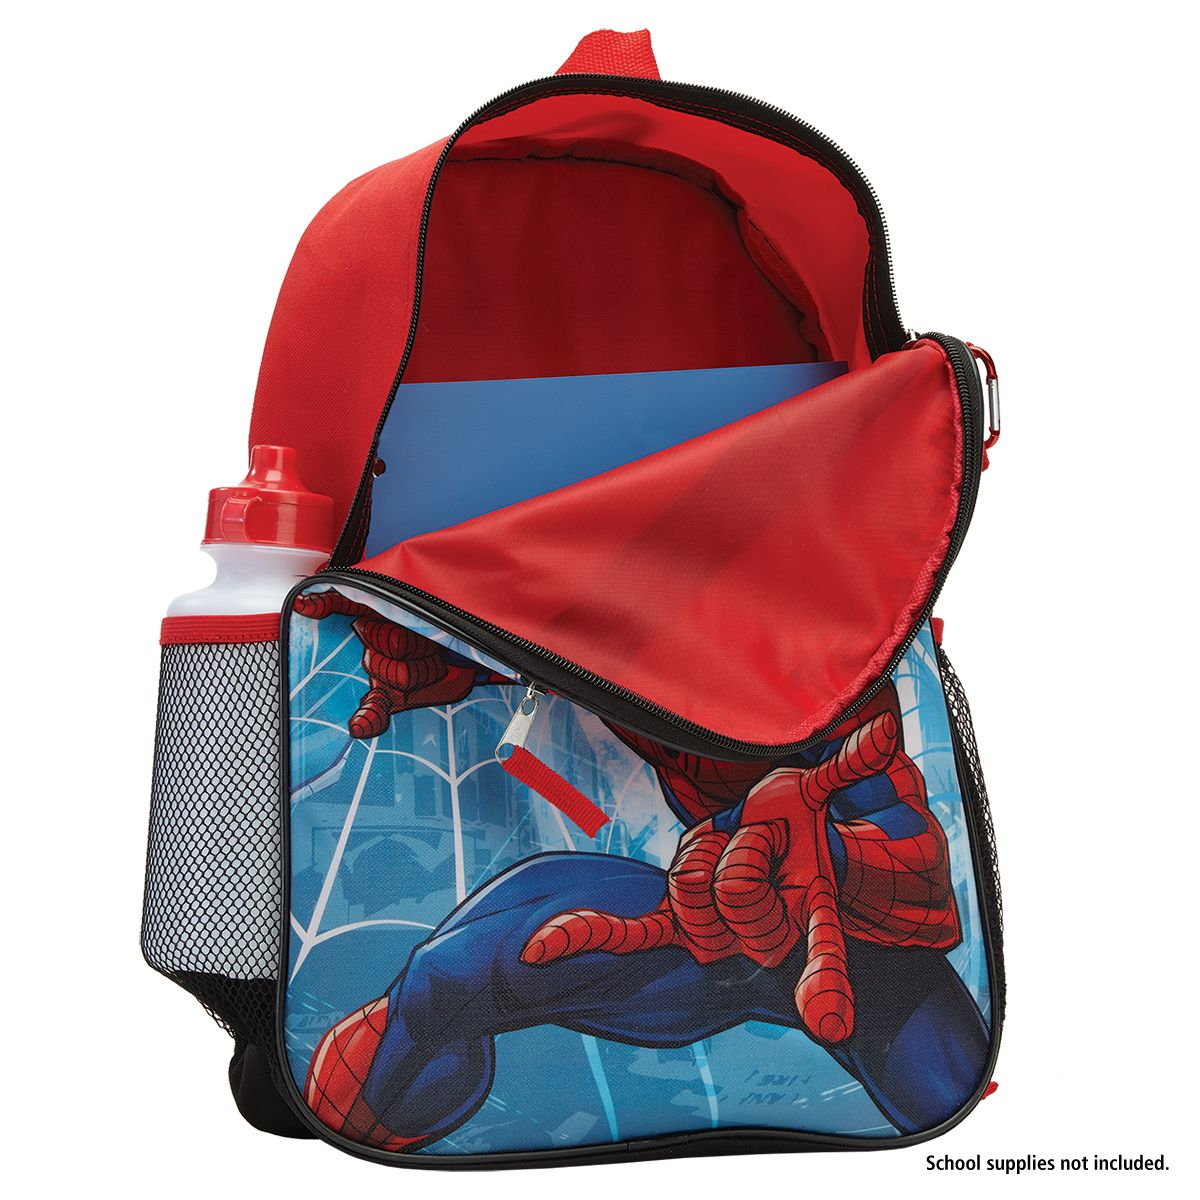 Personalized 5-in-1 Spiderman Backpack Set